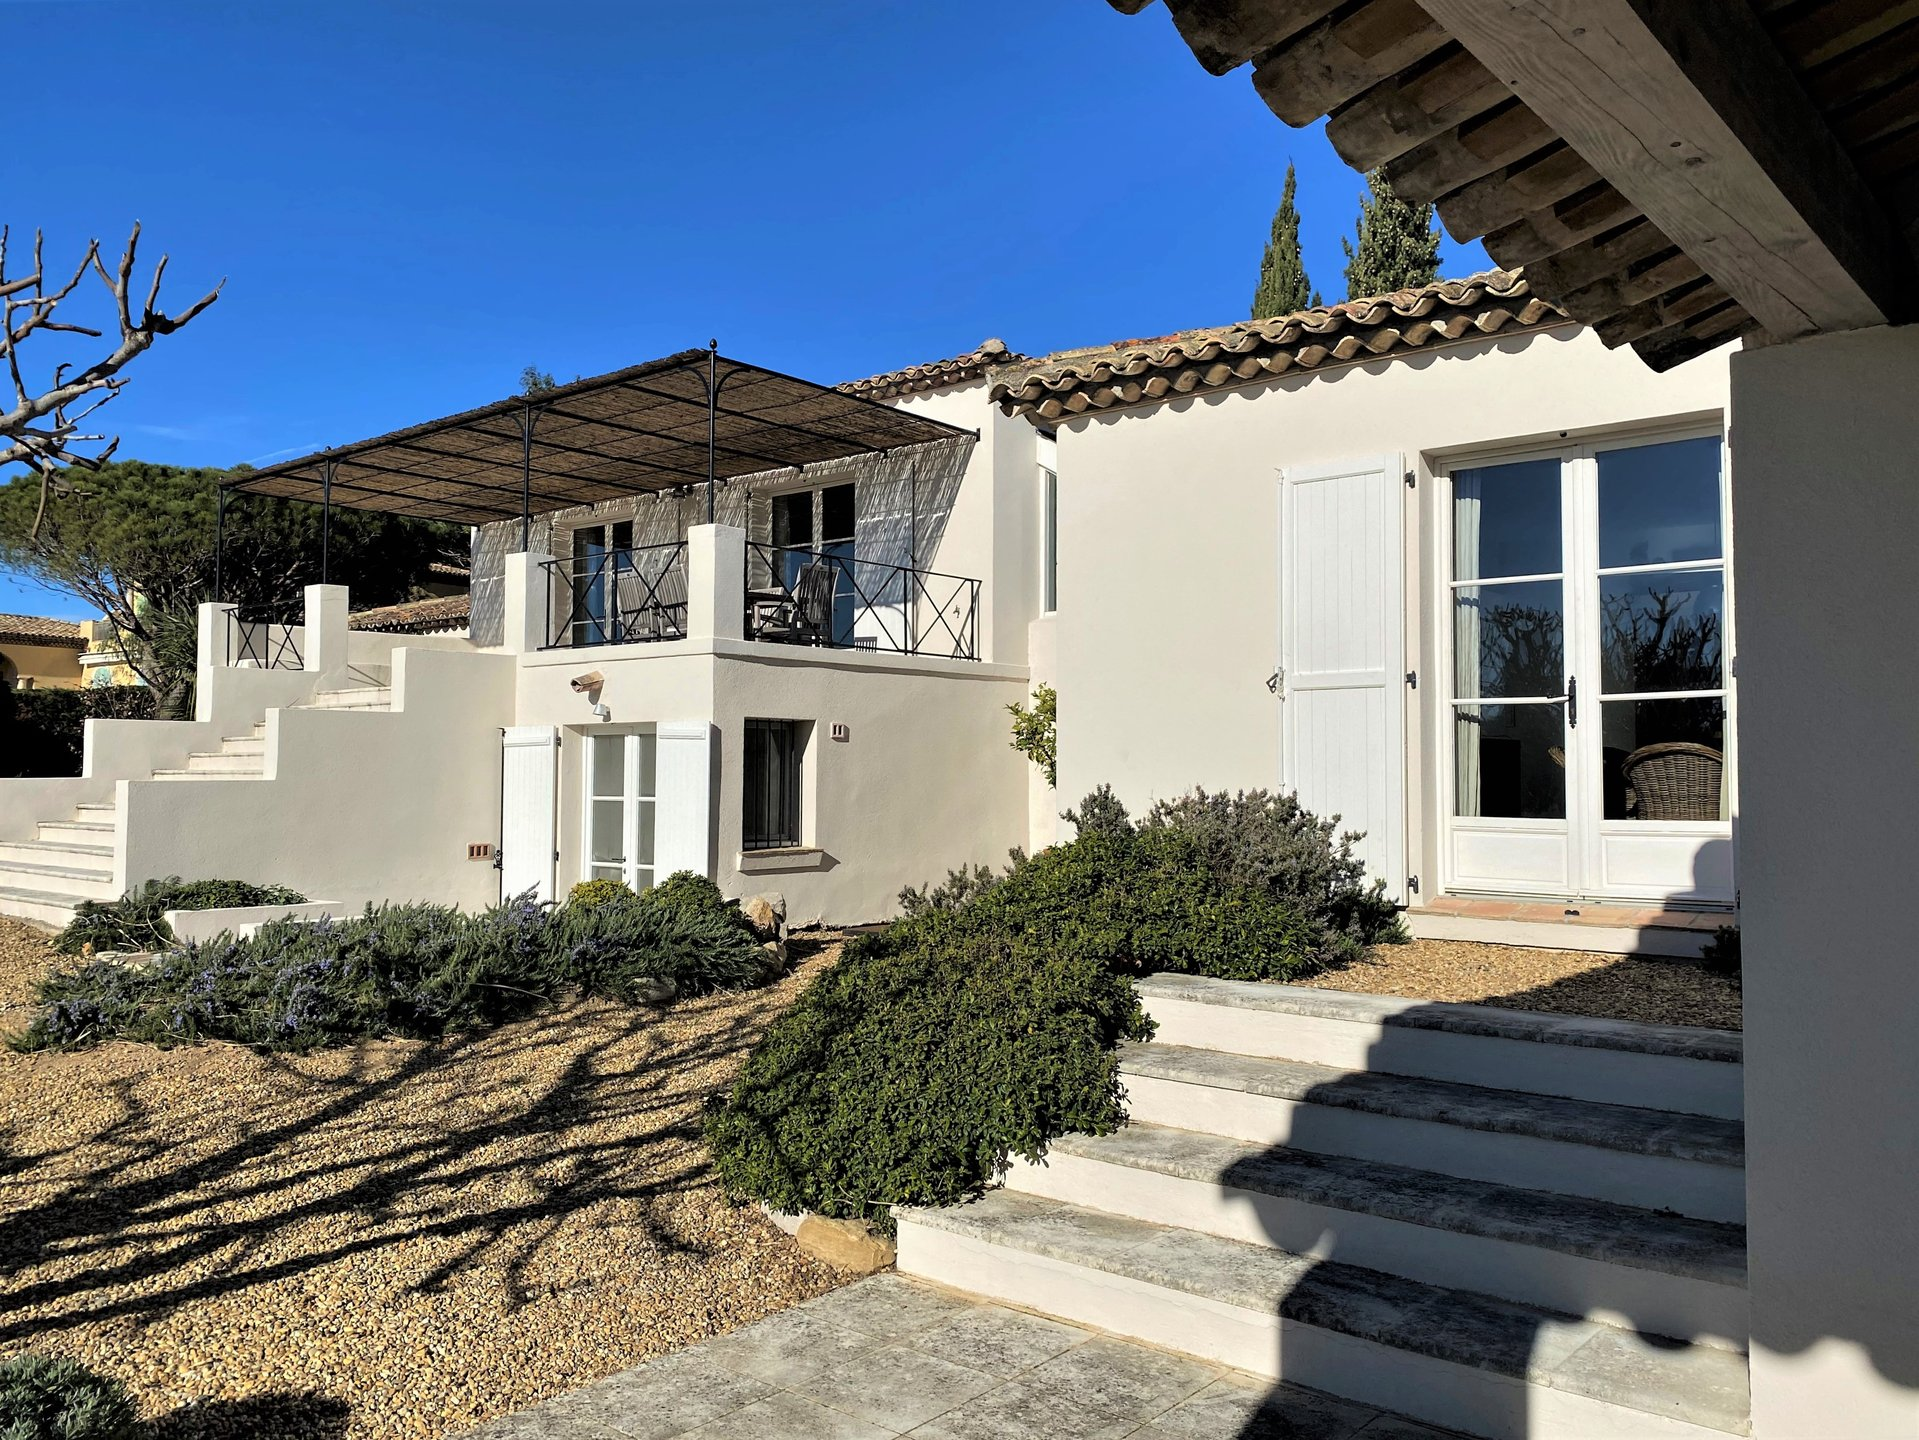 Superb villa in secured domain, nice sea view